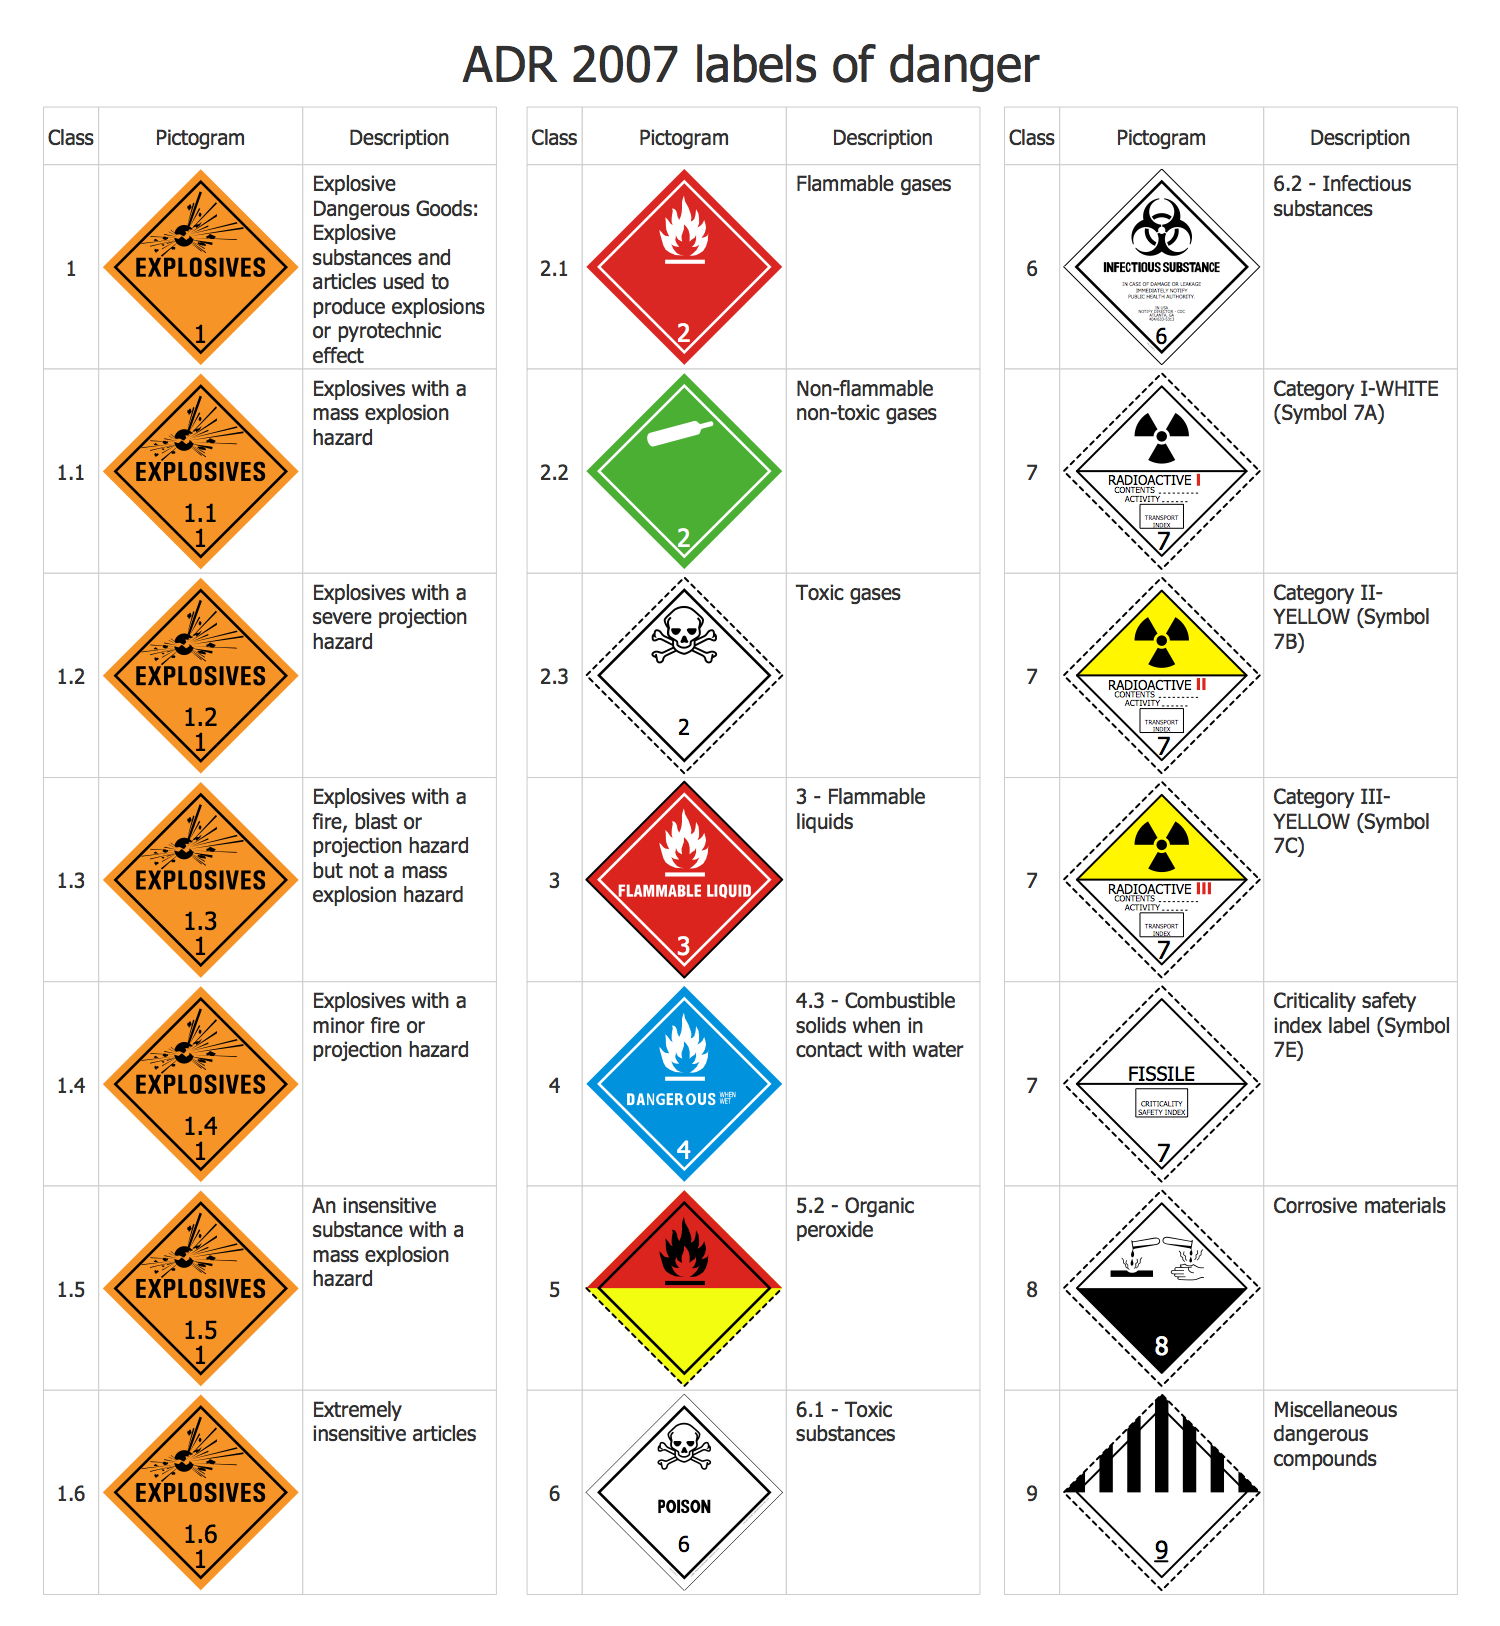 Transport Hazard Pictograms - ADR 2007 Labels of Danger